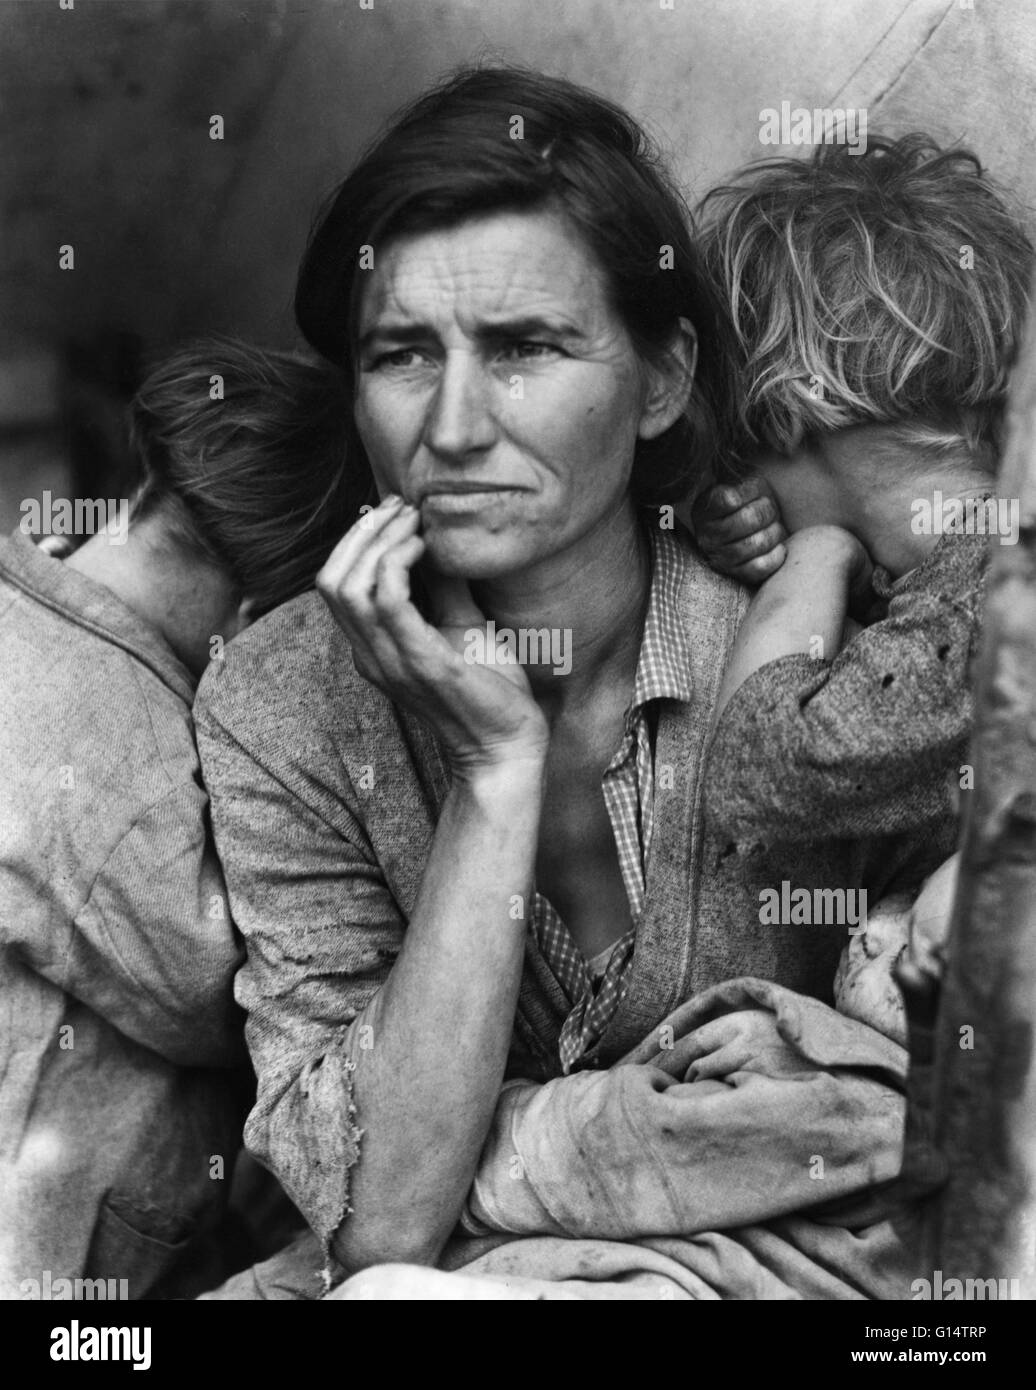 Dorothea Lange's famous photograph of a destitute mother with her children was taken in depression-era California. - Stock Image